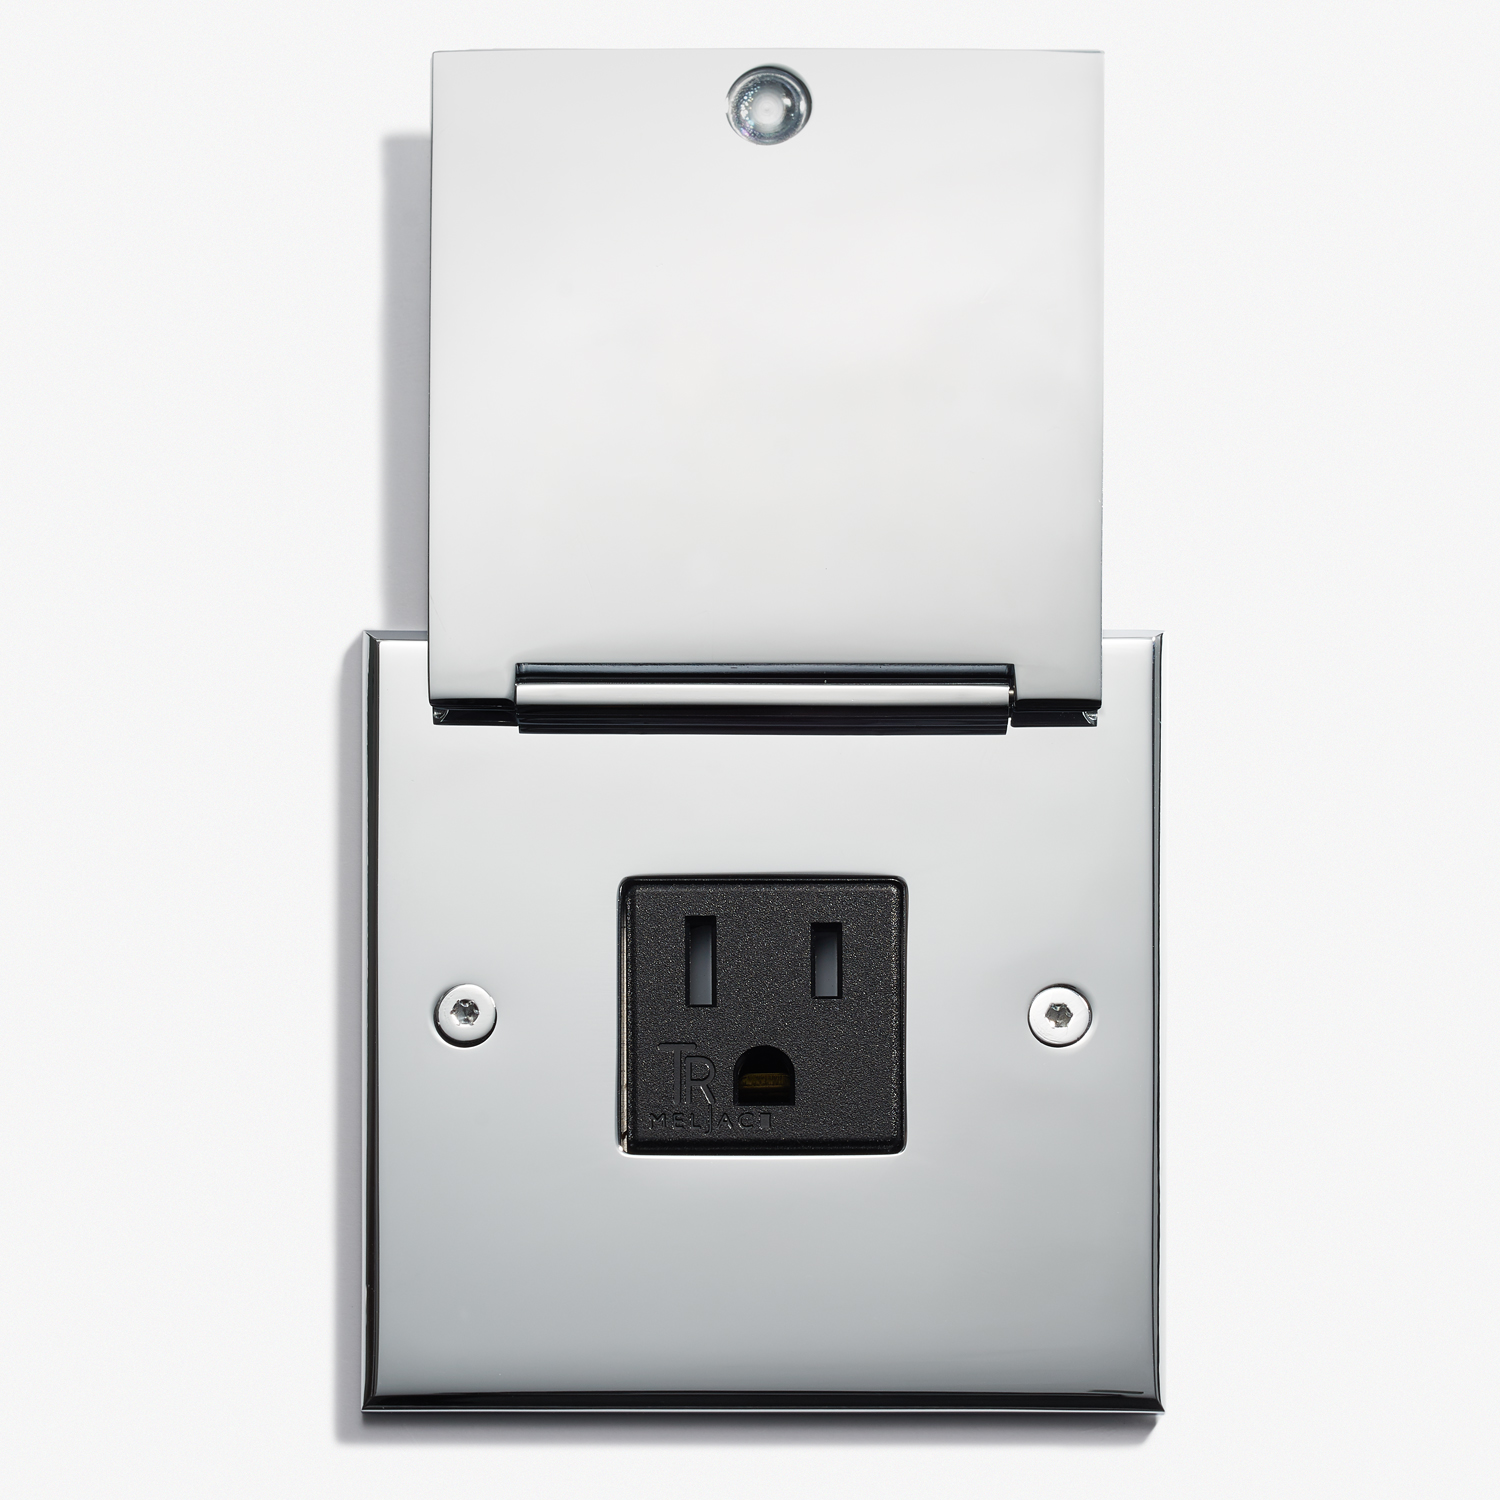 82 x 82 - Single Outlet - Cover - Chromé Vif 2.jpg